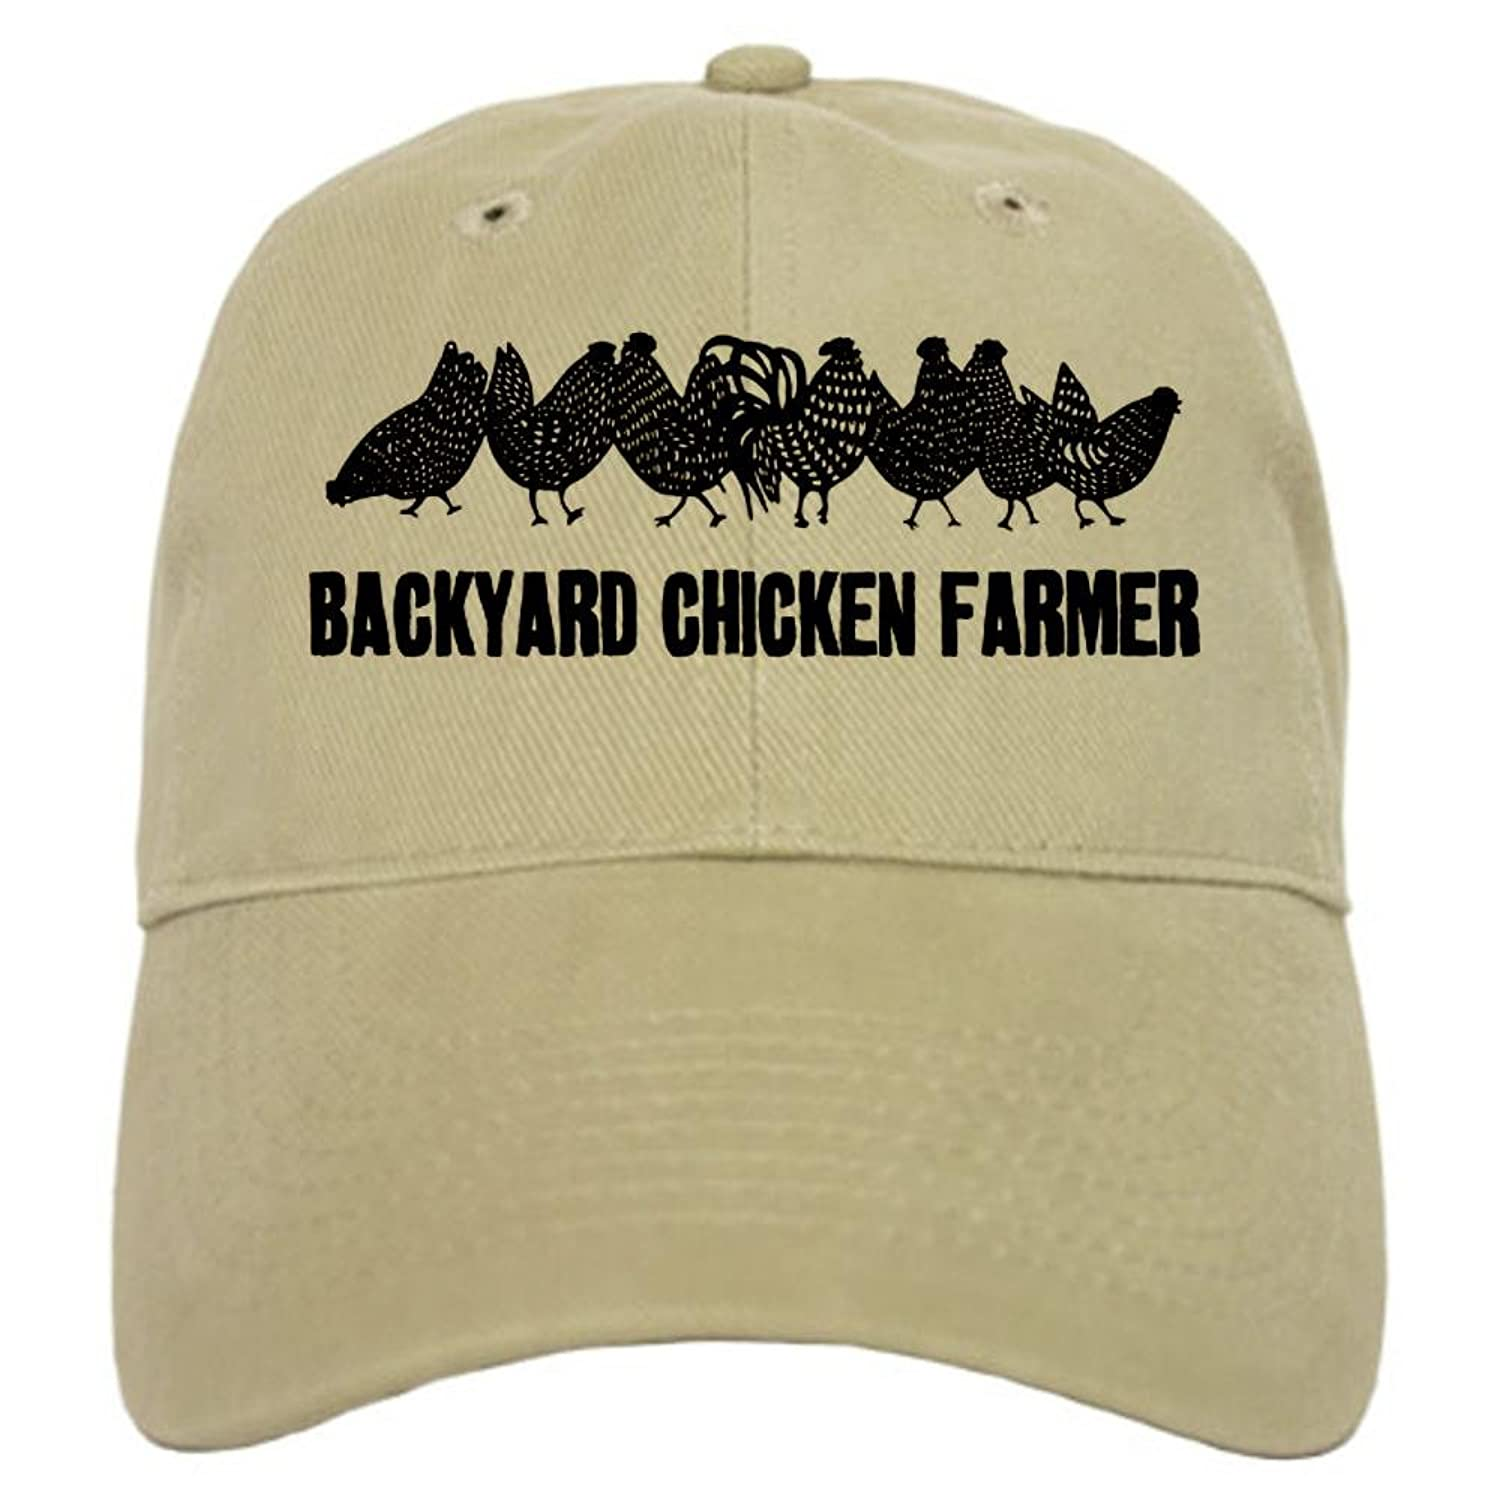 amazon com cafepress backyard chicken farmer cap baseball cap